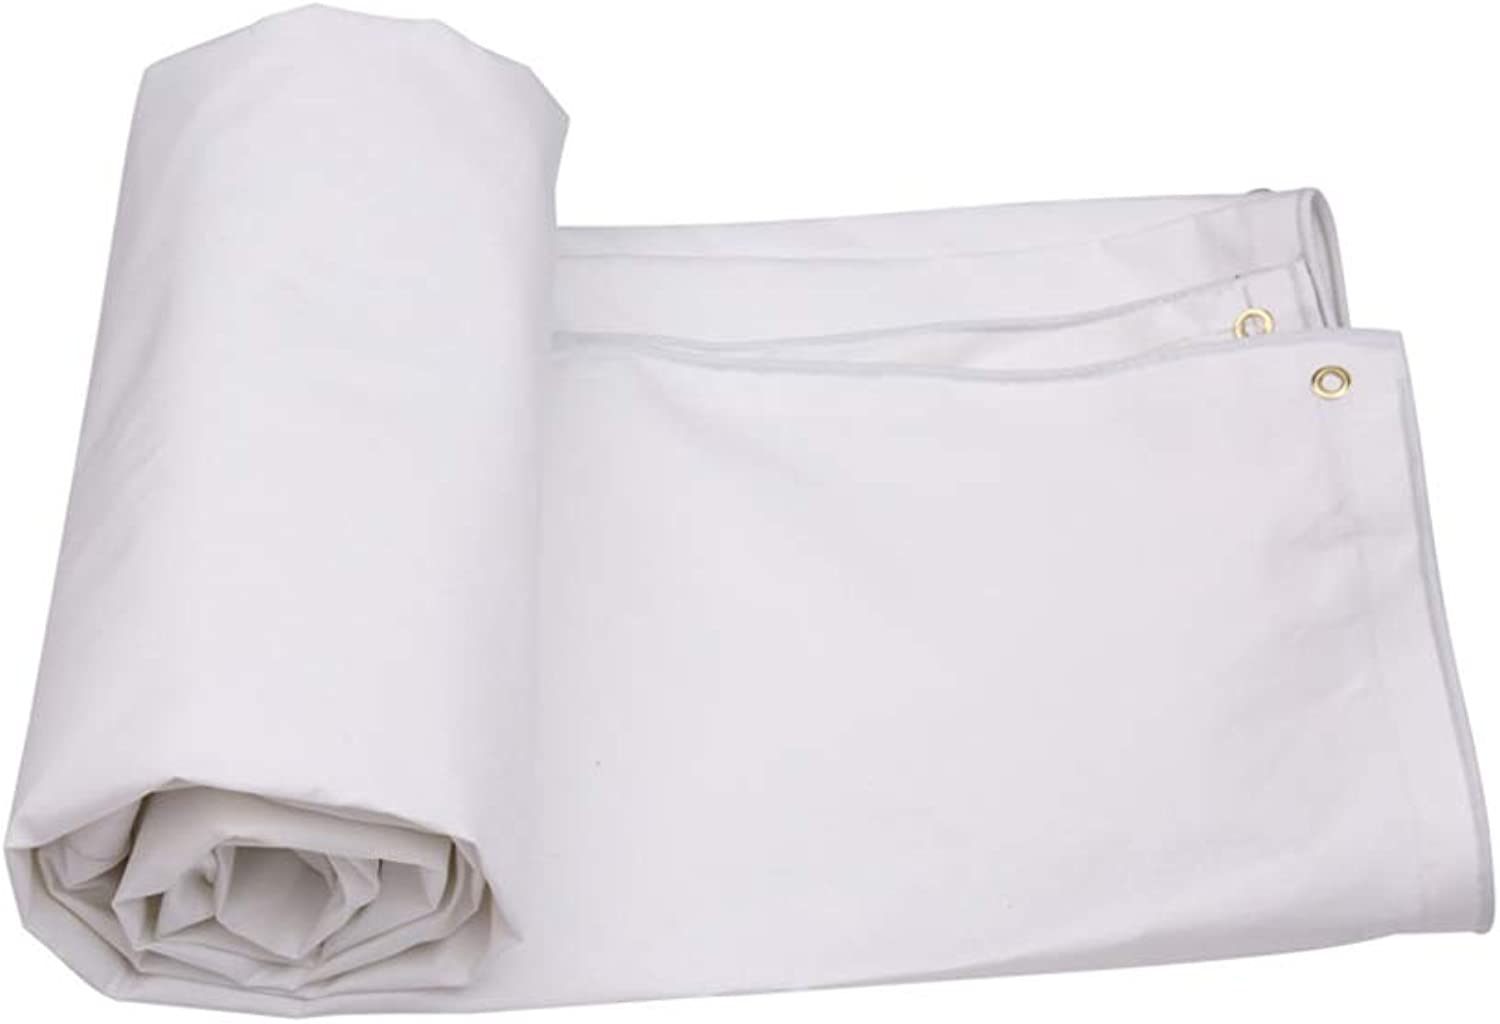 White Canvas Waterproof Tarpaulin Tarpaulin for Outdoor Picnic Vehicle Camping Site, Family Wear